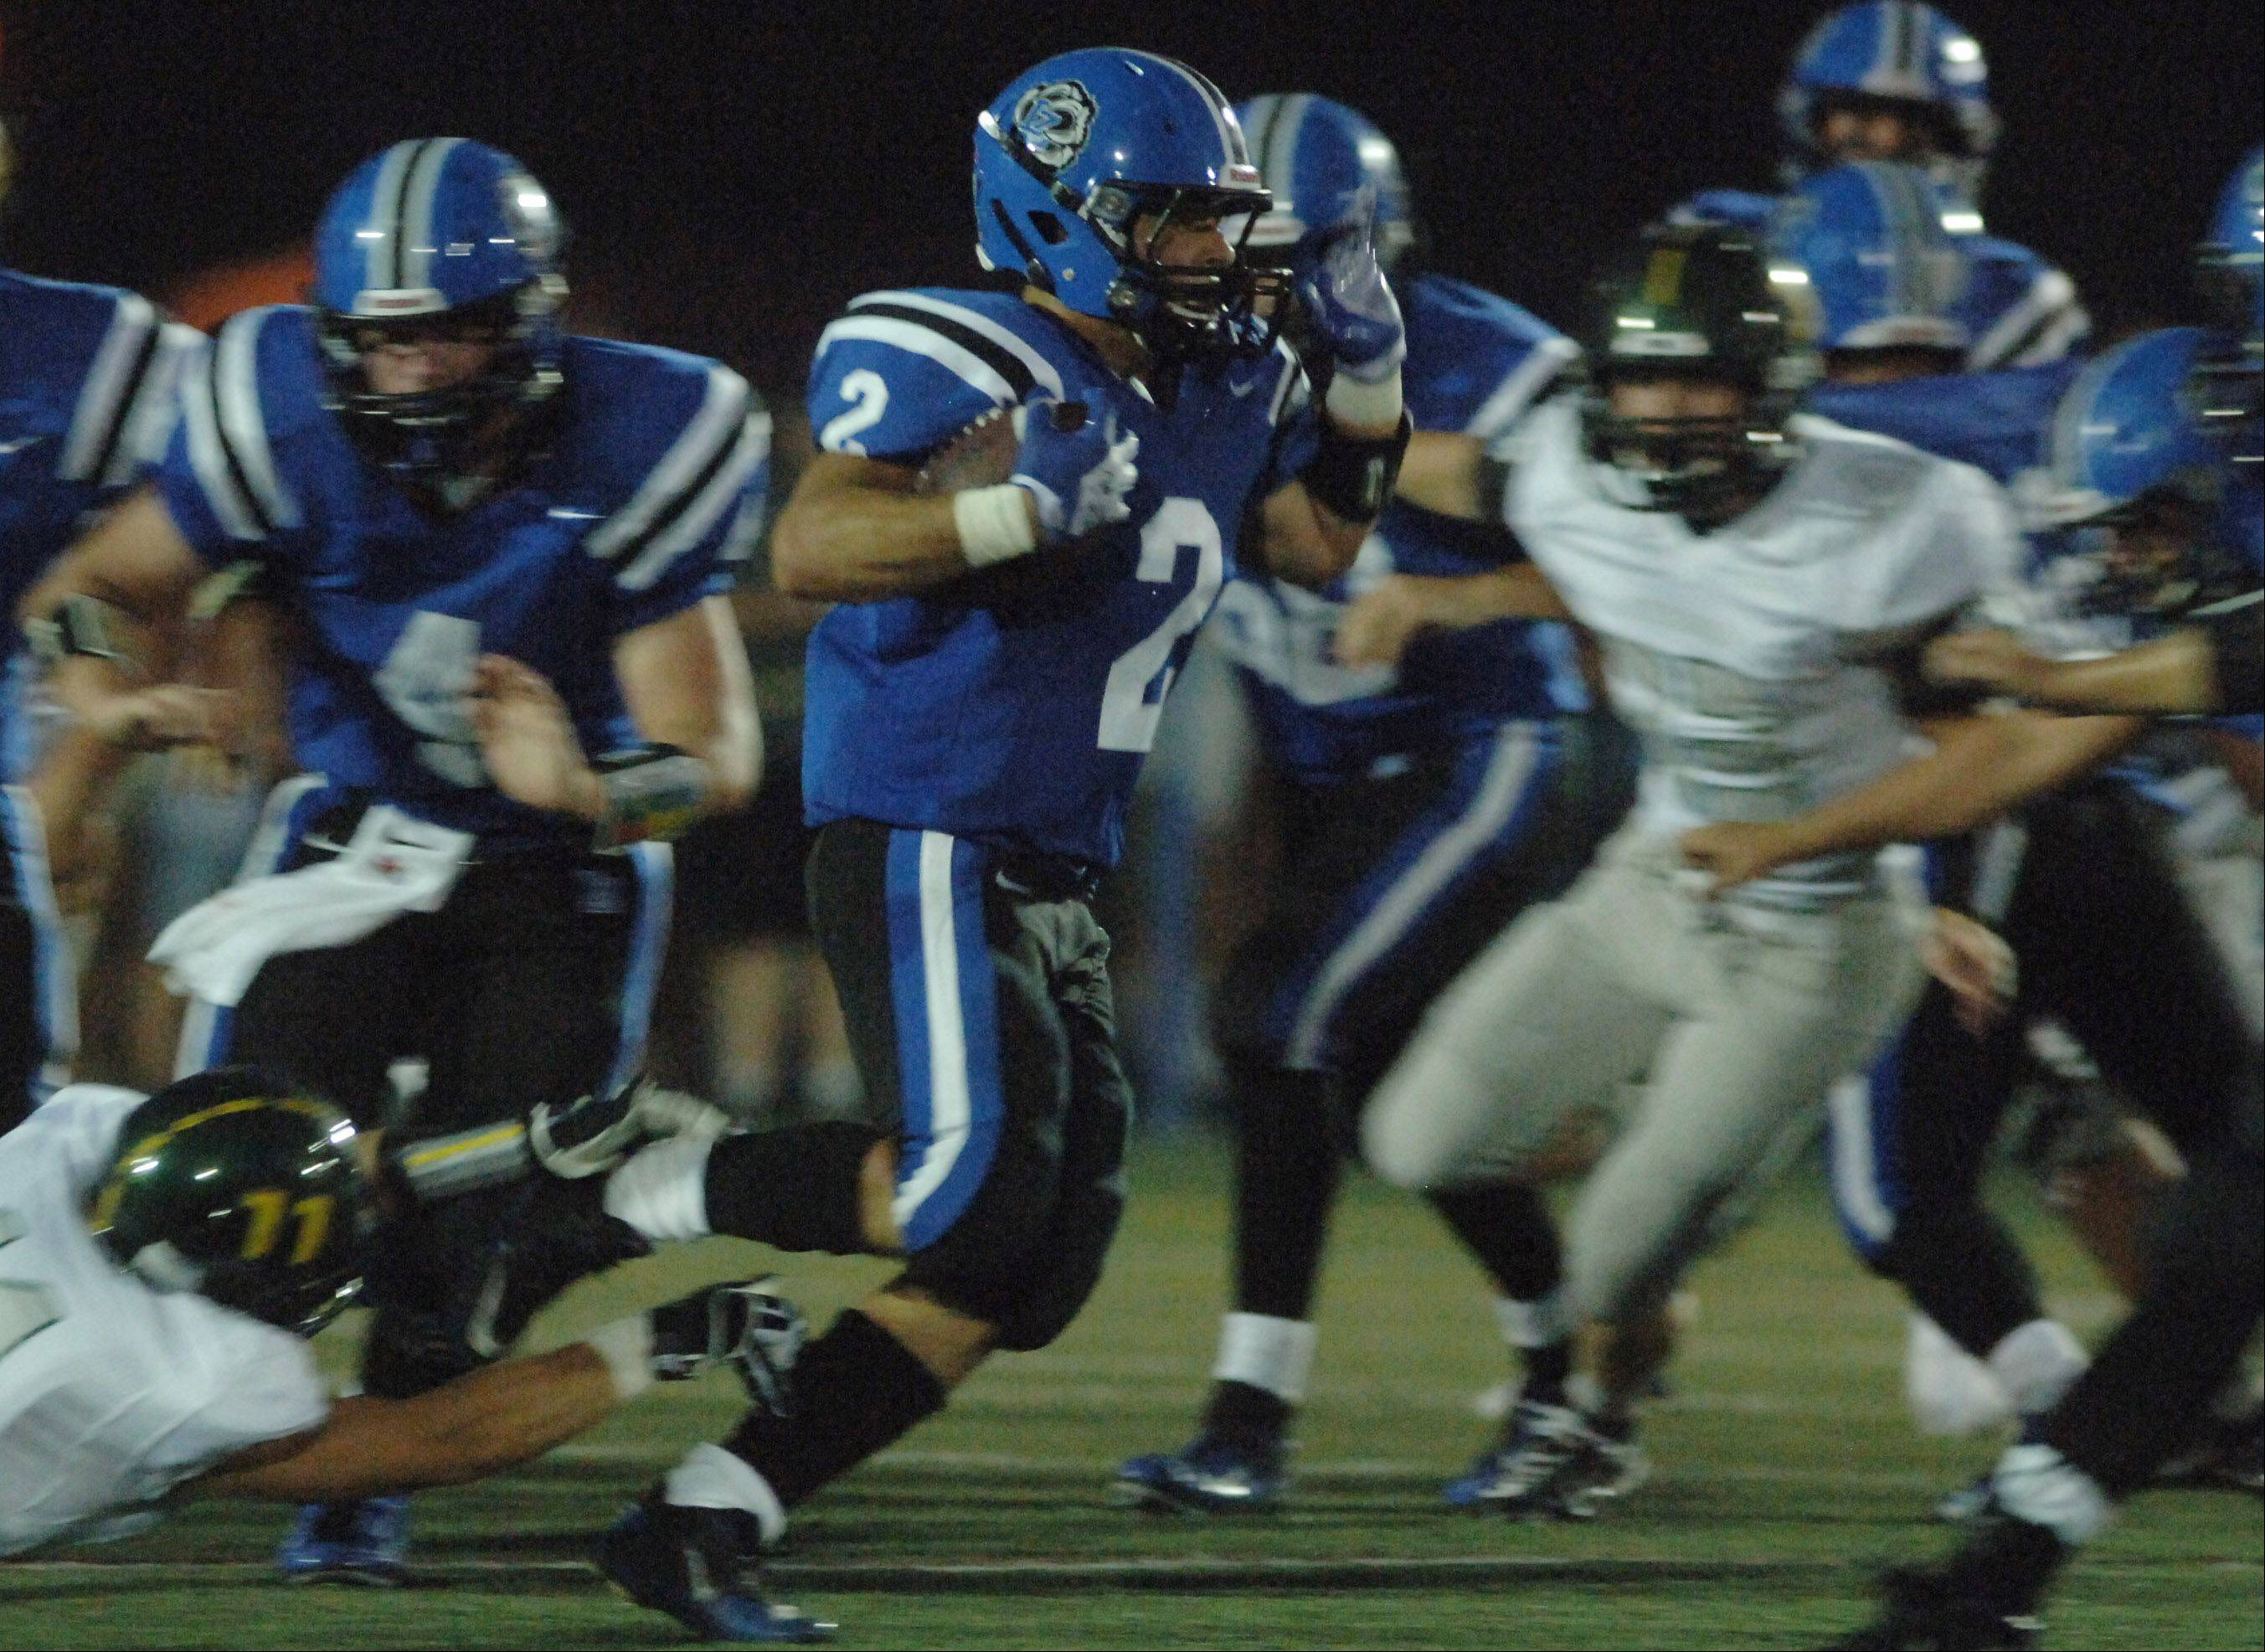 Lake Zurich's Kody Schaar has some running room against Fremd on Friday night in Lake Zurich.